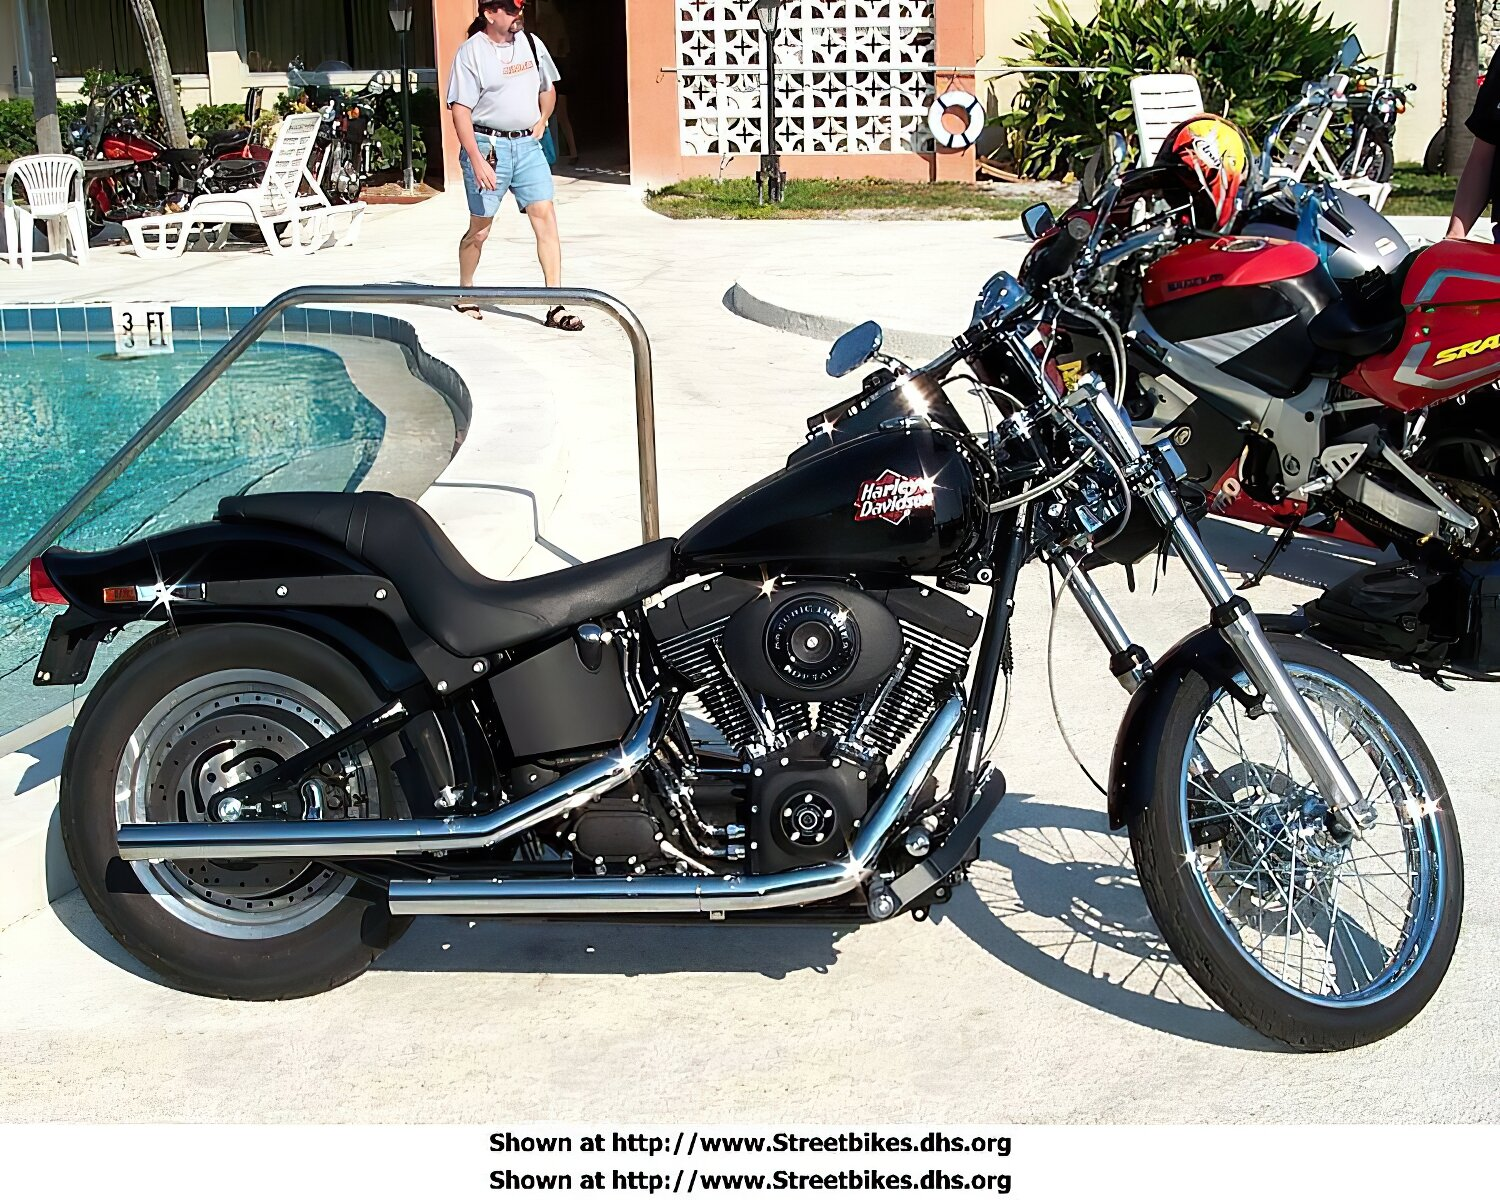 Harley-Davidson Unknown (HD) - ID: 1220